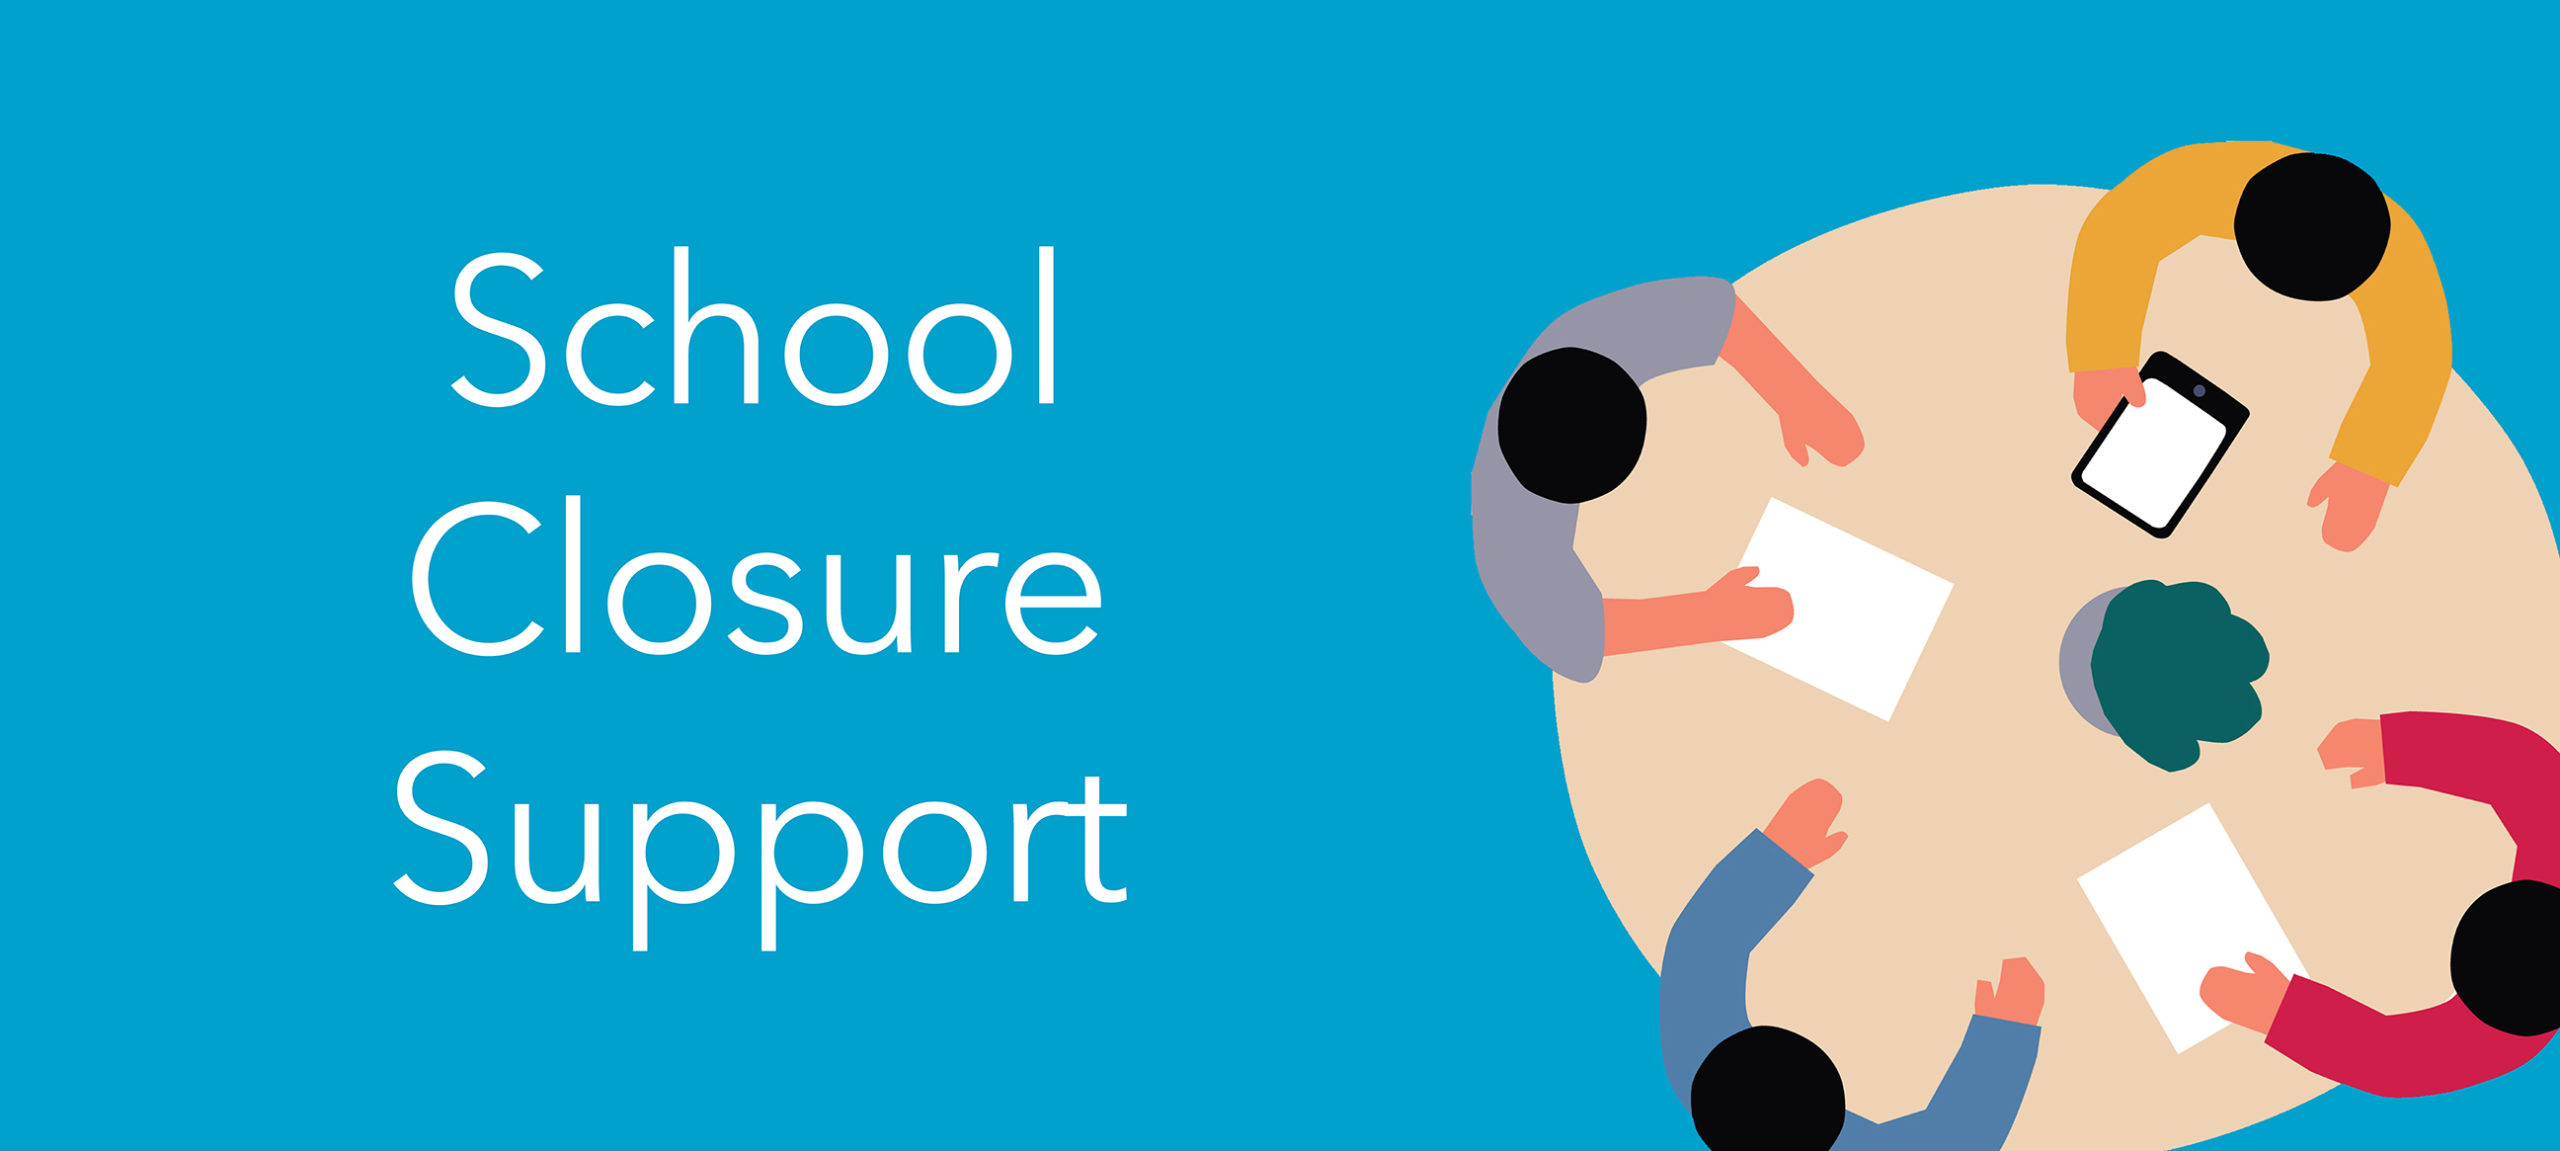 School Closure Support